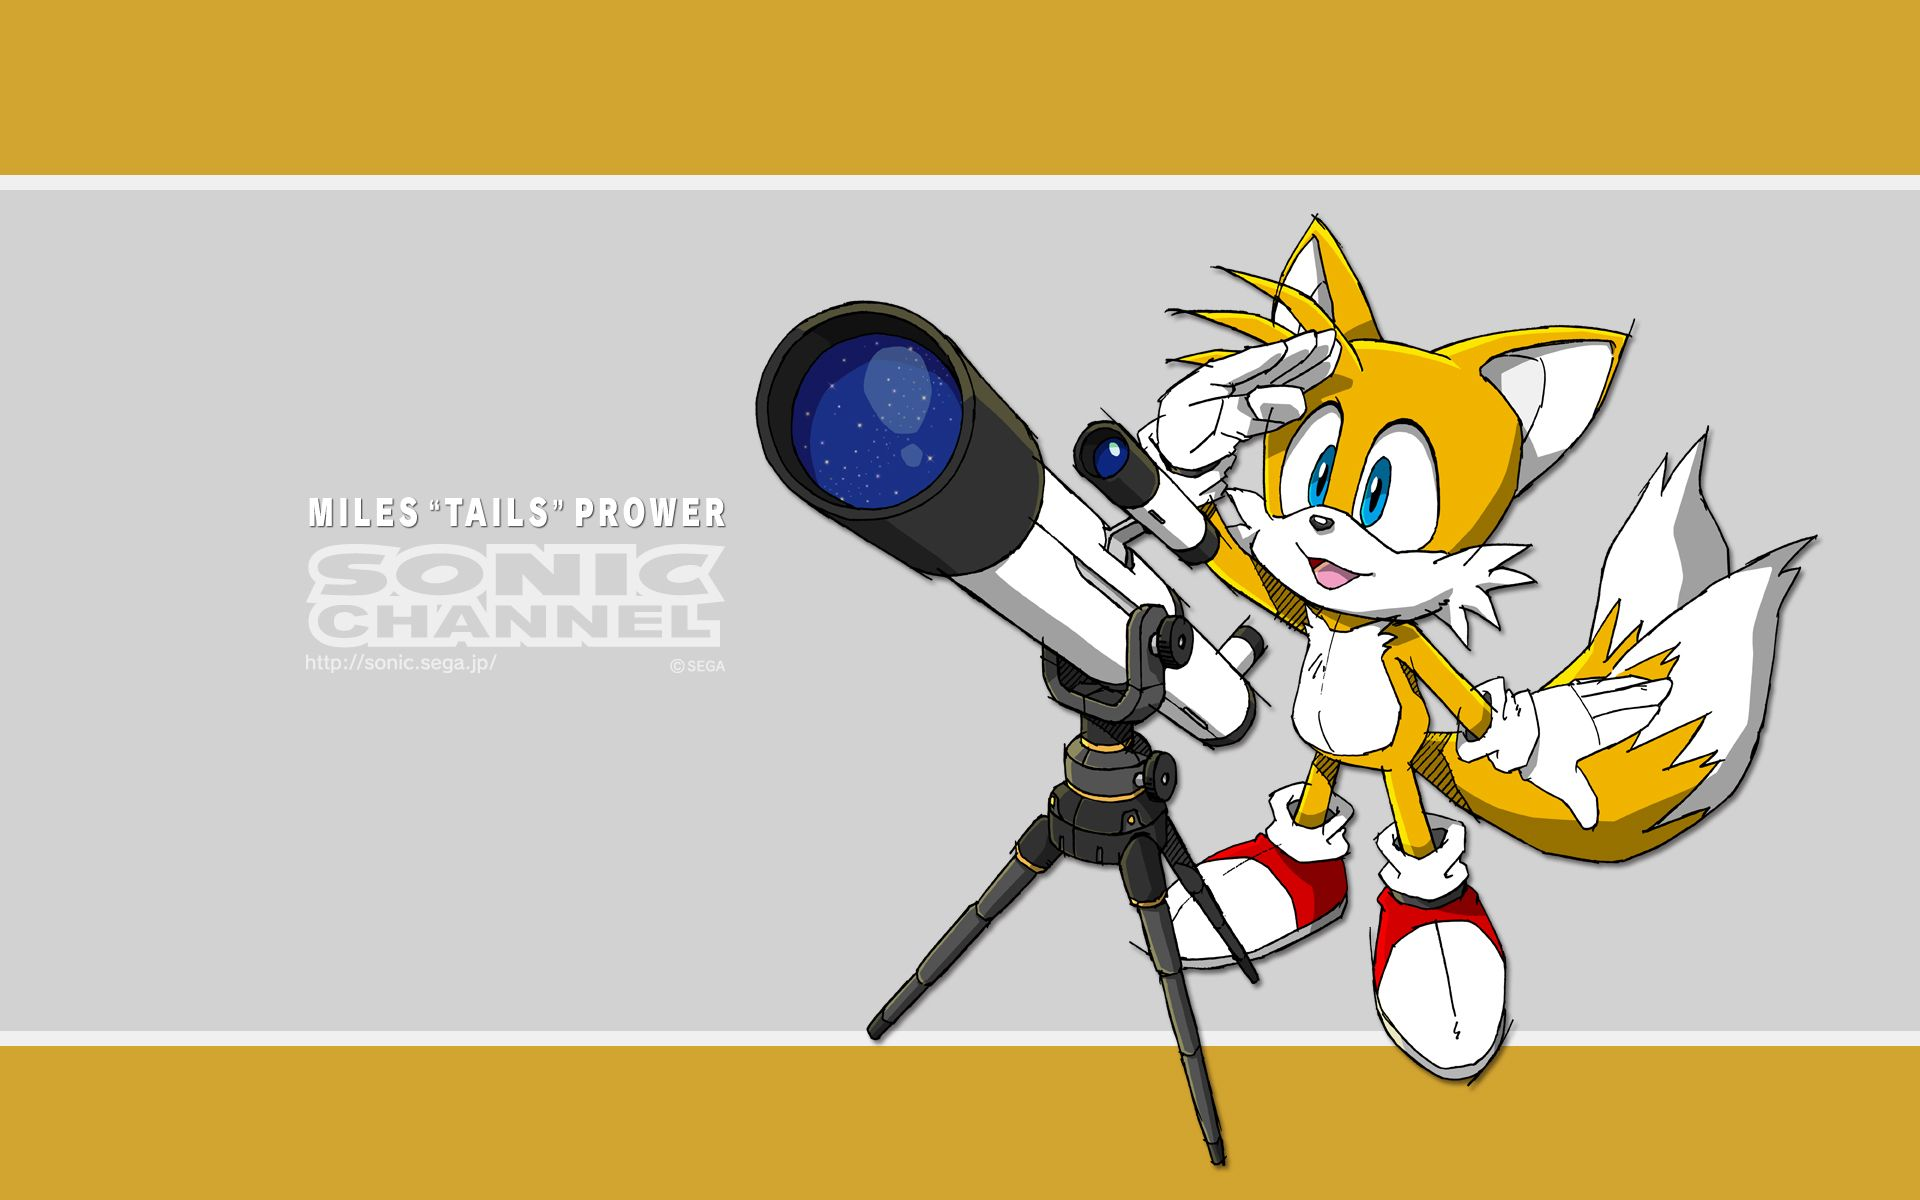 201407milestailsprower.jpg (1920×1200) sonic Pinterest